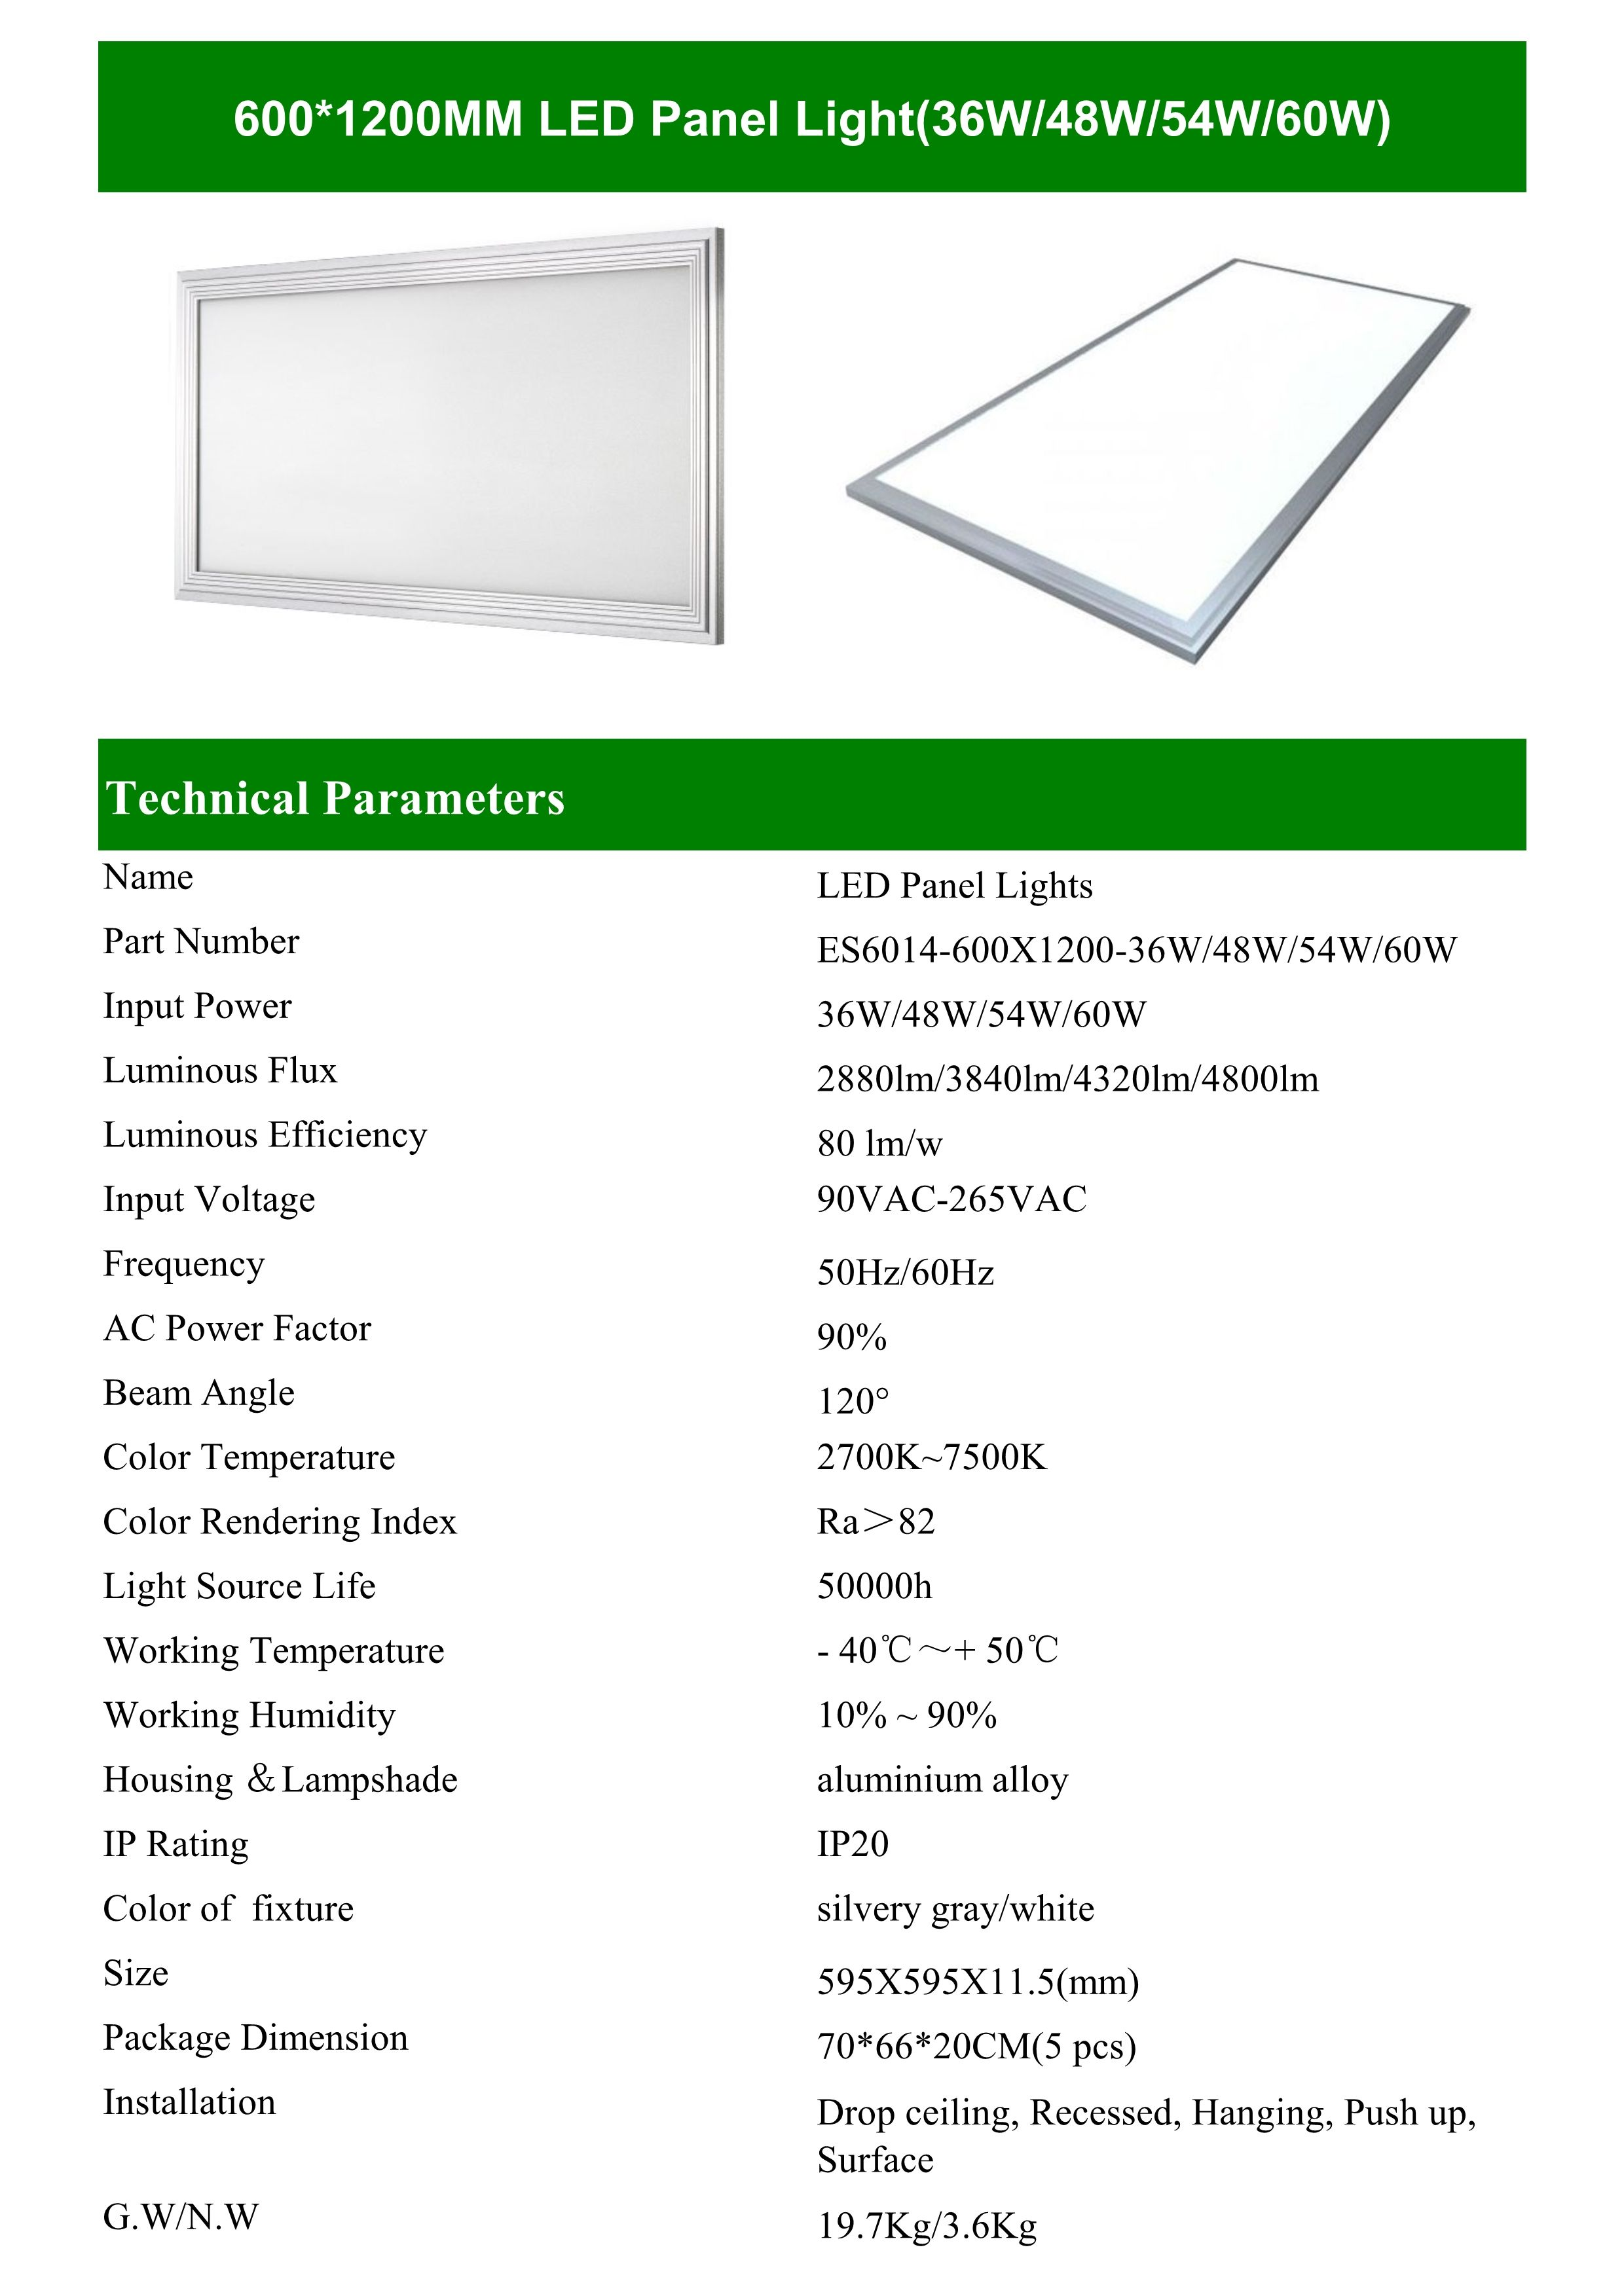 Pin By Easter Industries On Led Panel Light Pinterest Wiring Diagram 120 Volt Fixture And